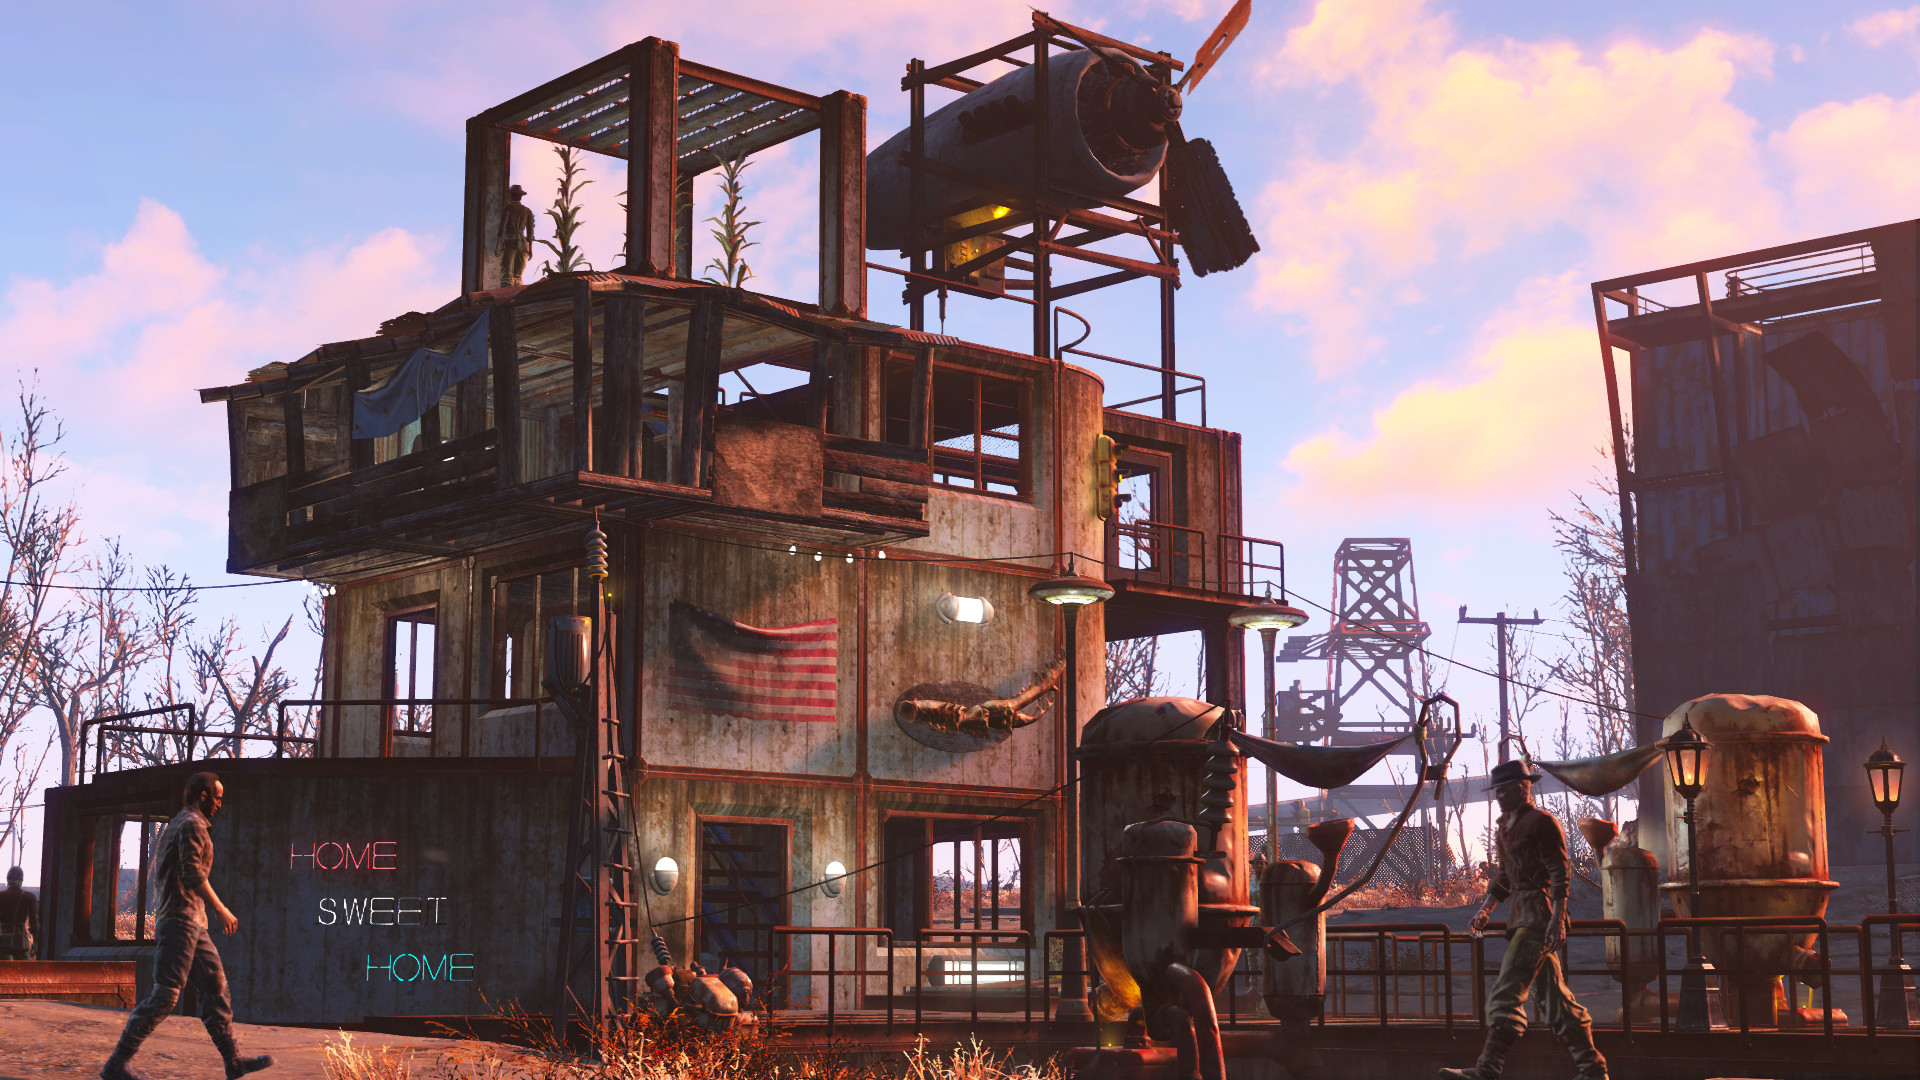 Natural Get Fallout 4 Diamond City House Ideas Fallout 4 Small House Ideas Get Yoursettlers To Fight Fallout Wasteland Workshop How To Build Arenas Wasteland Workshop How To Build Arenas curbed Fallout 4 House Ideas